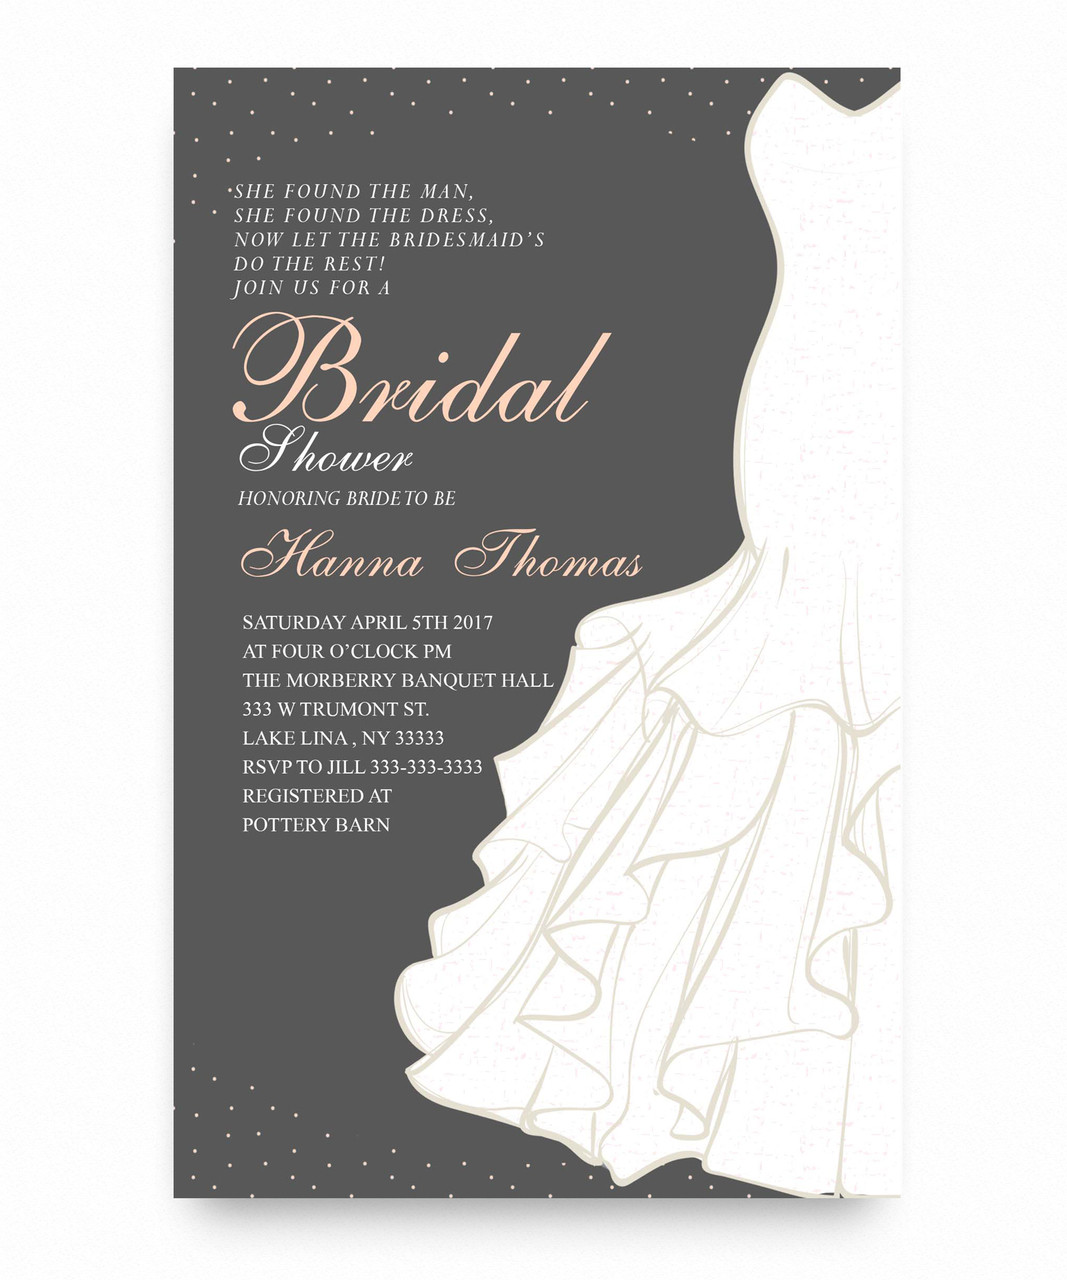 Bridal shower invitation wedding dress wedding dress bridal shower invitation chalkboard bridal shower bride beautiful affordable invites filmwisefo